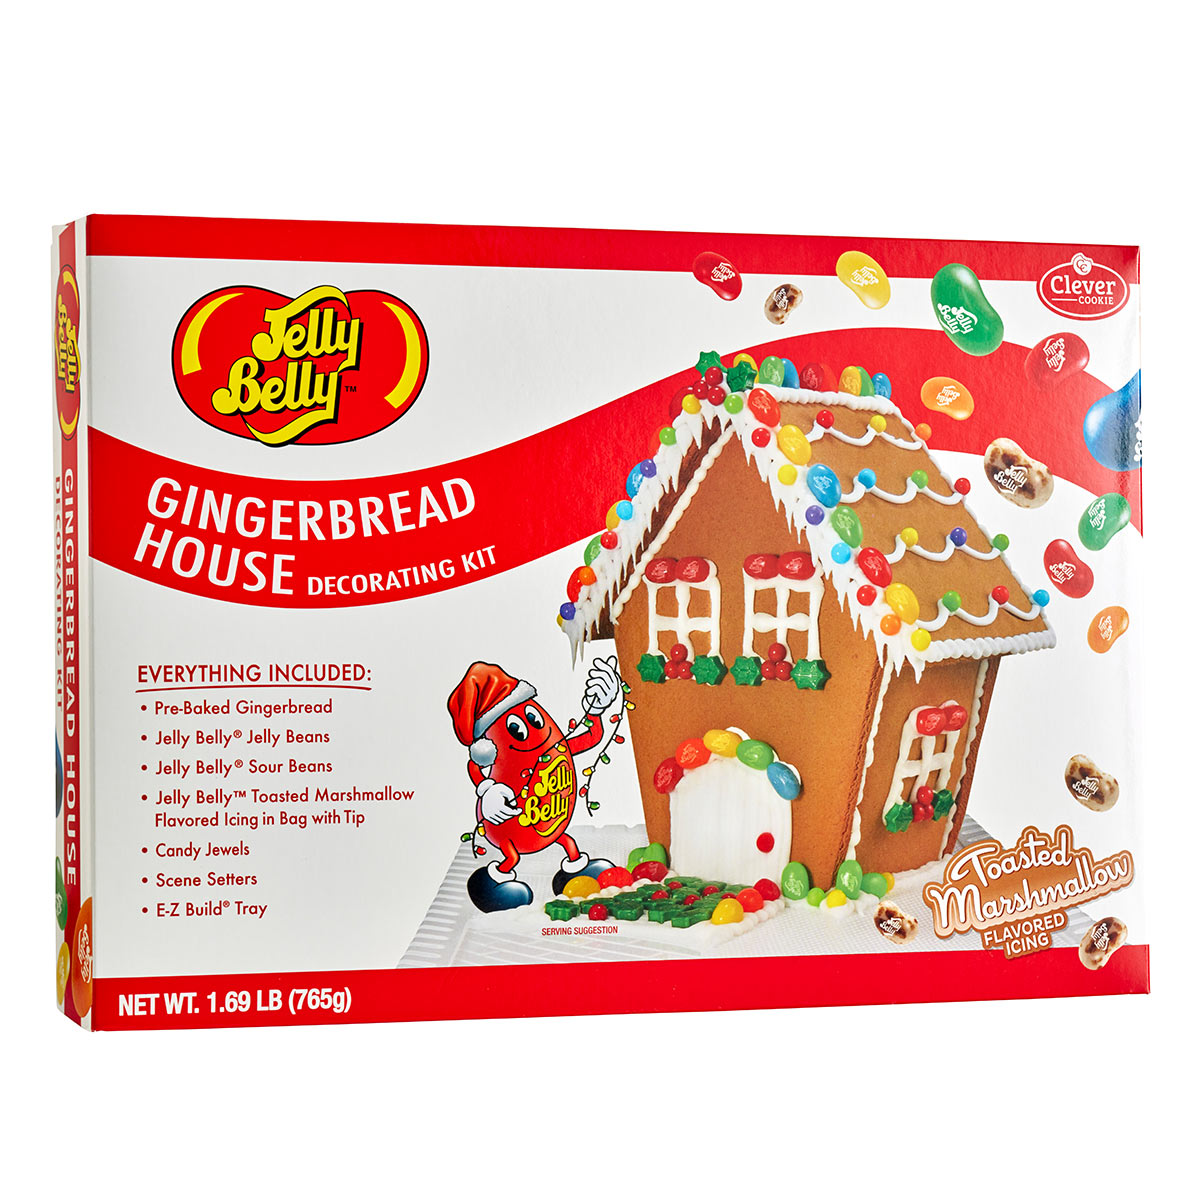 Jelly Belly Gingerbread House Decorating Kit ...